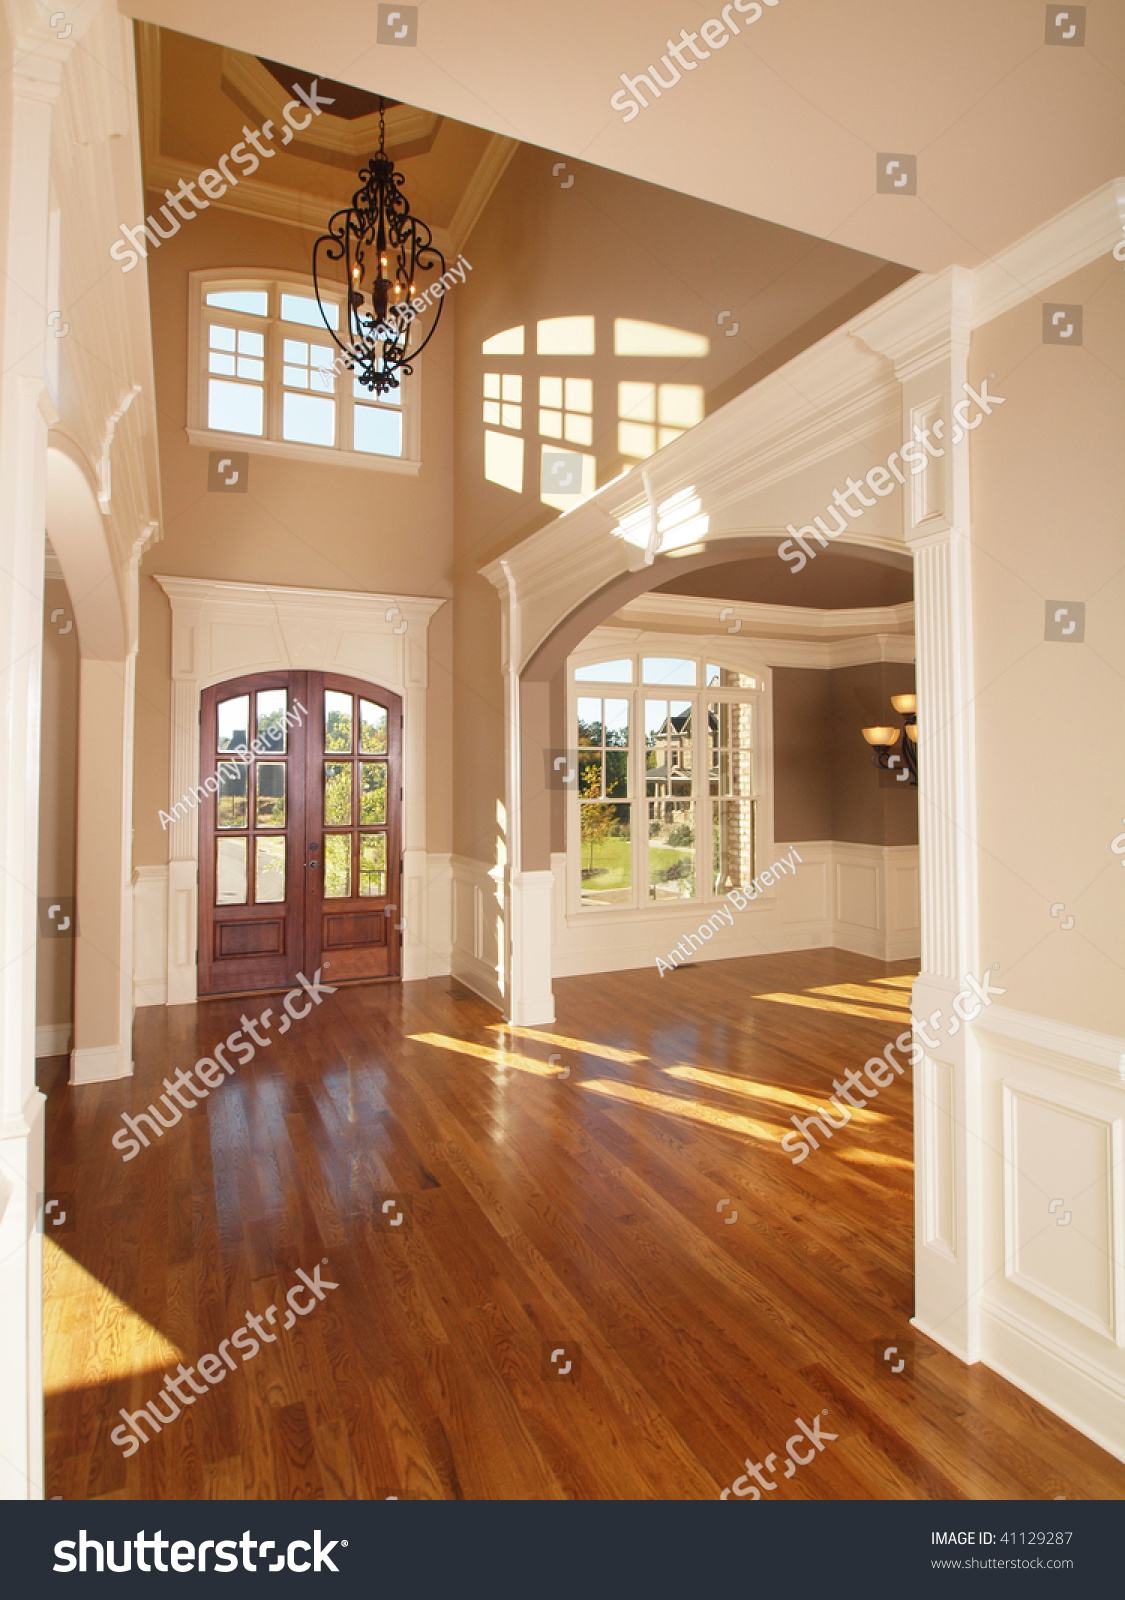 Model luxury home interior front entrance stock photo for Luxury home models